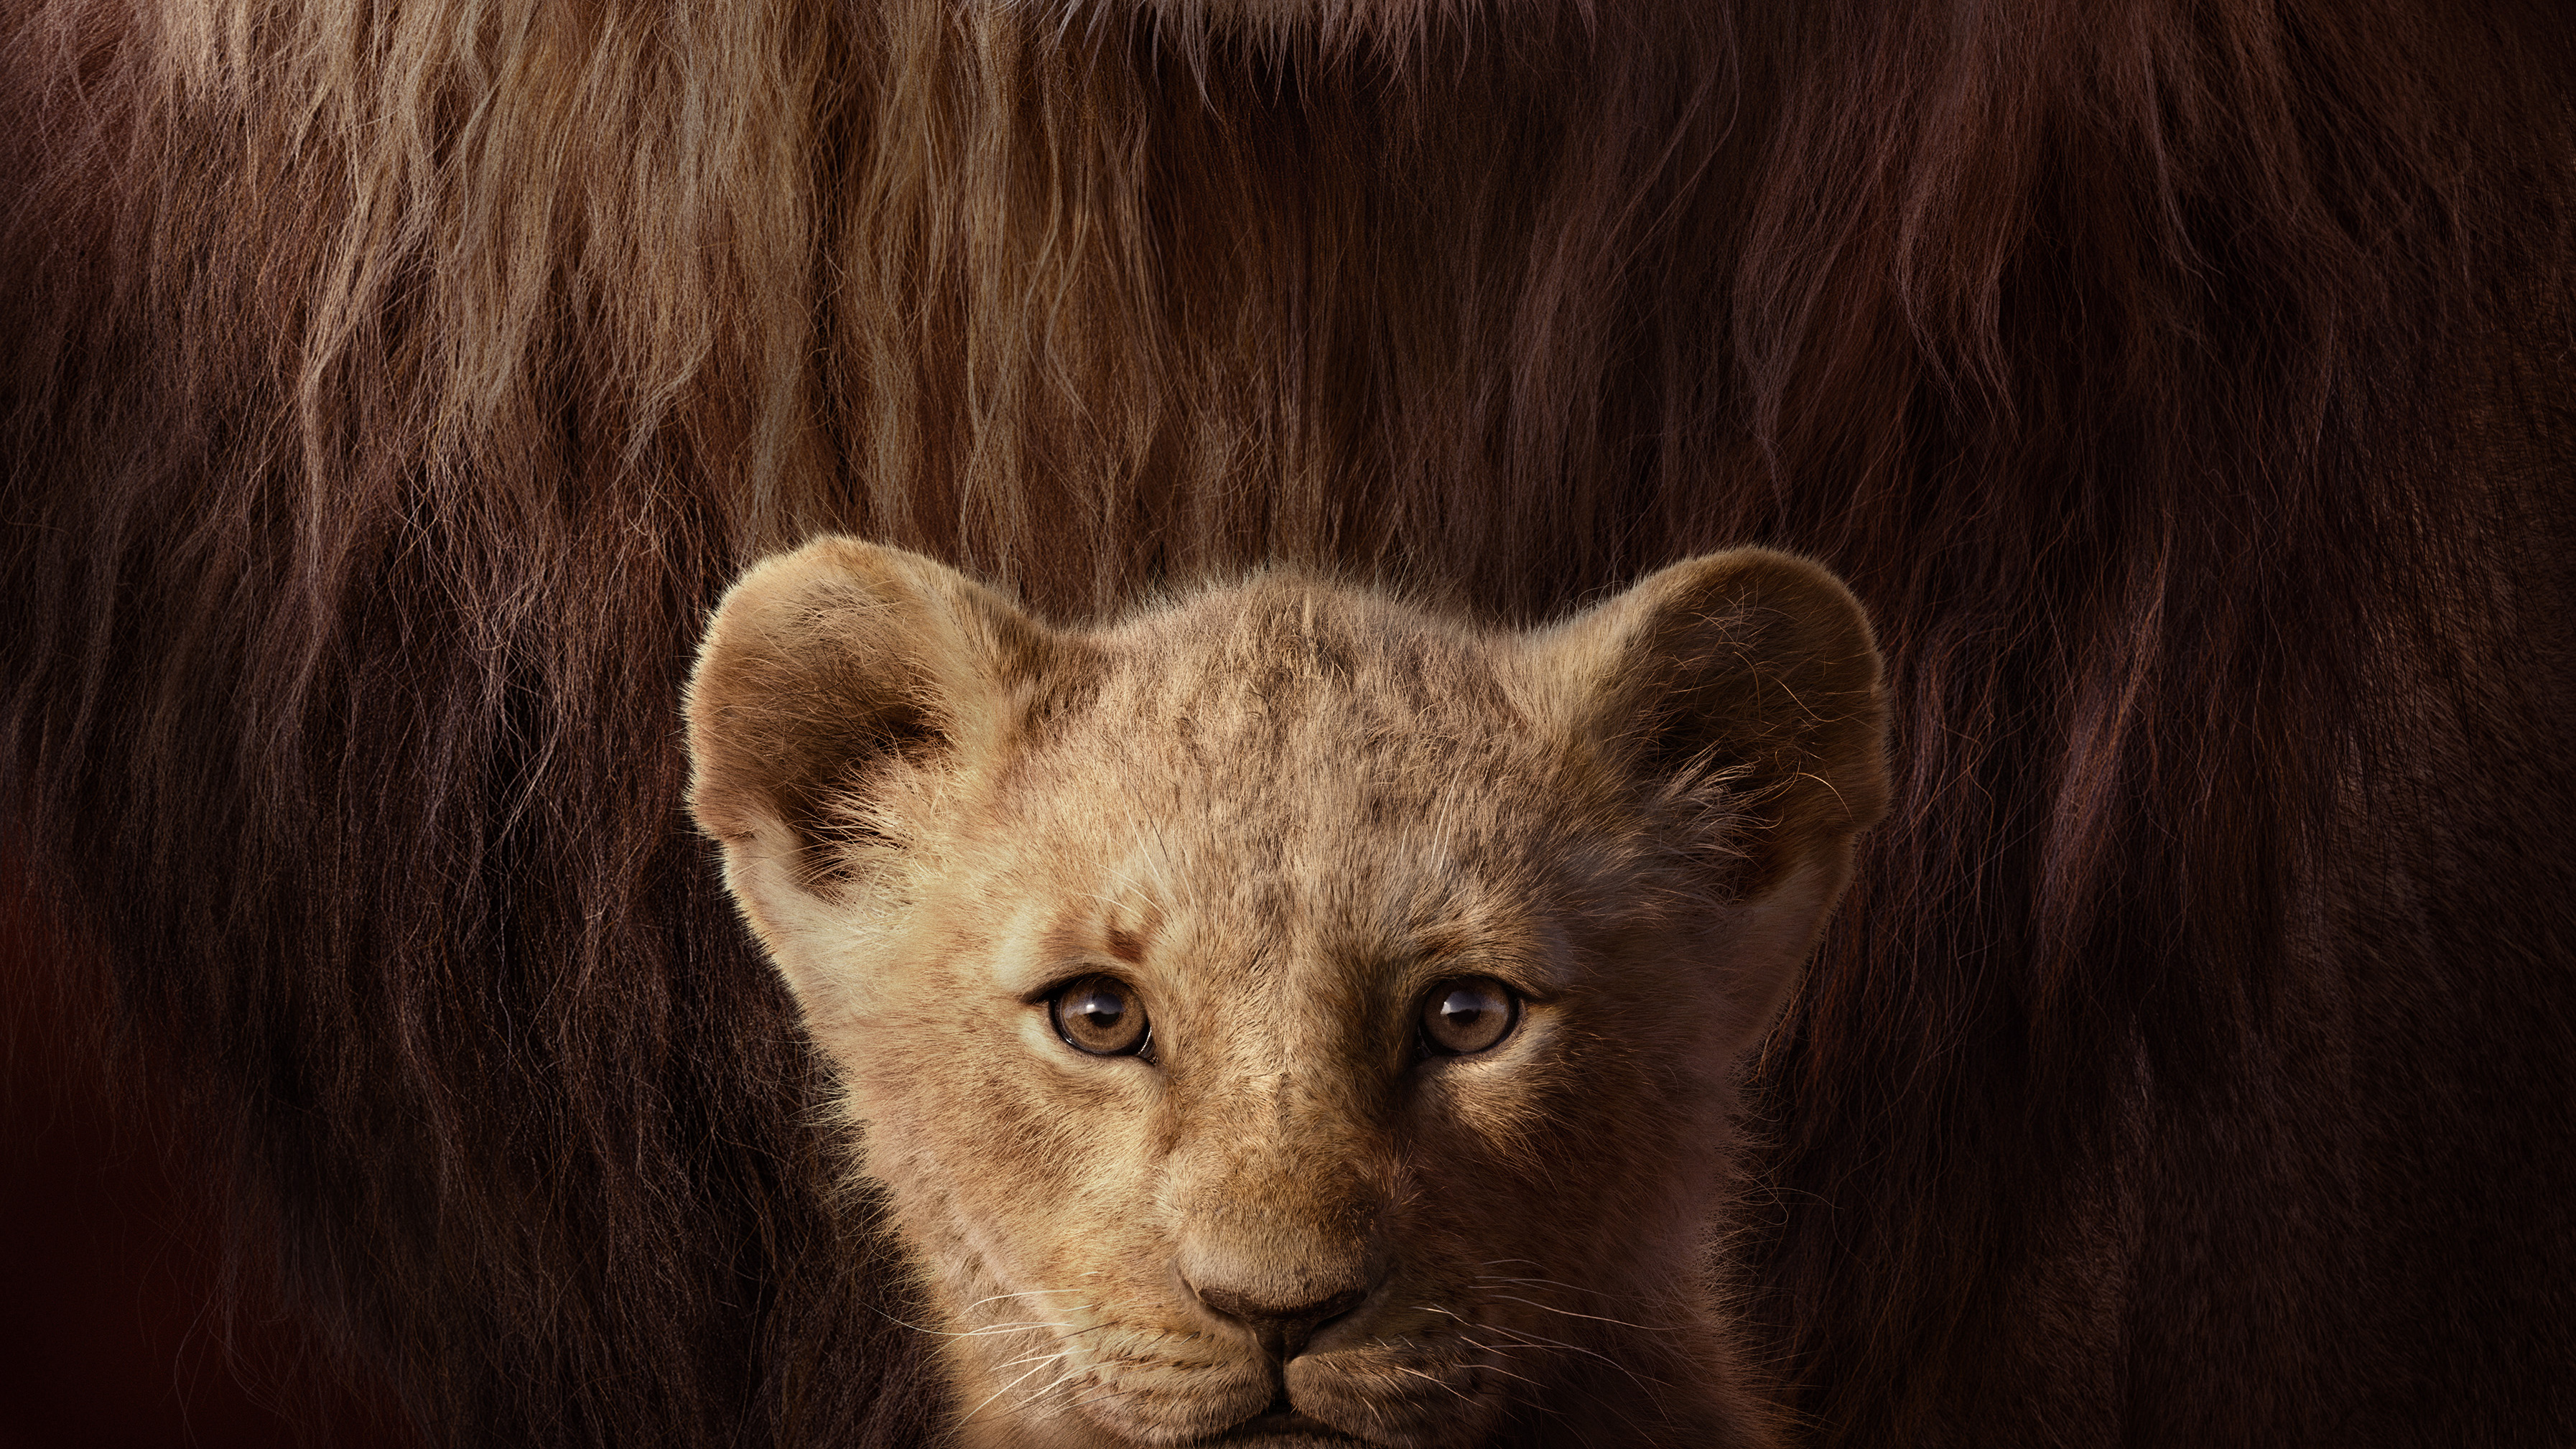 The Lion King Key Art 4k Hd Movies 4k Wallpapers Images